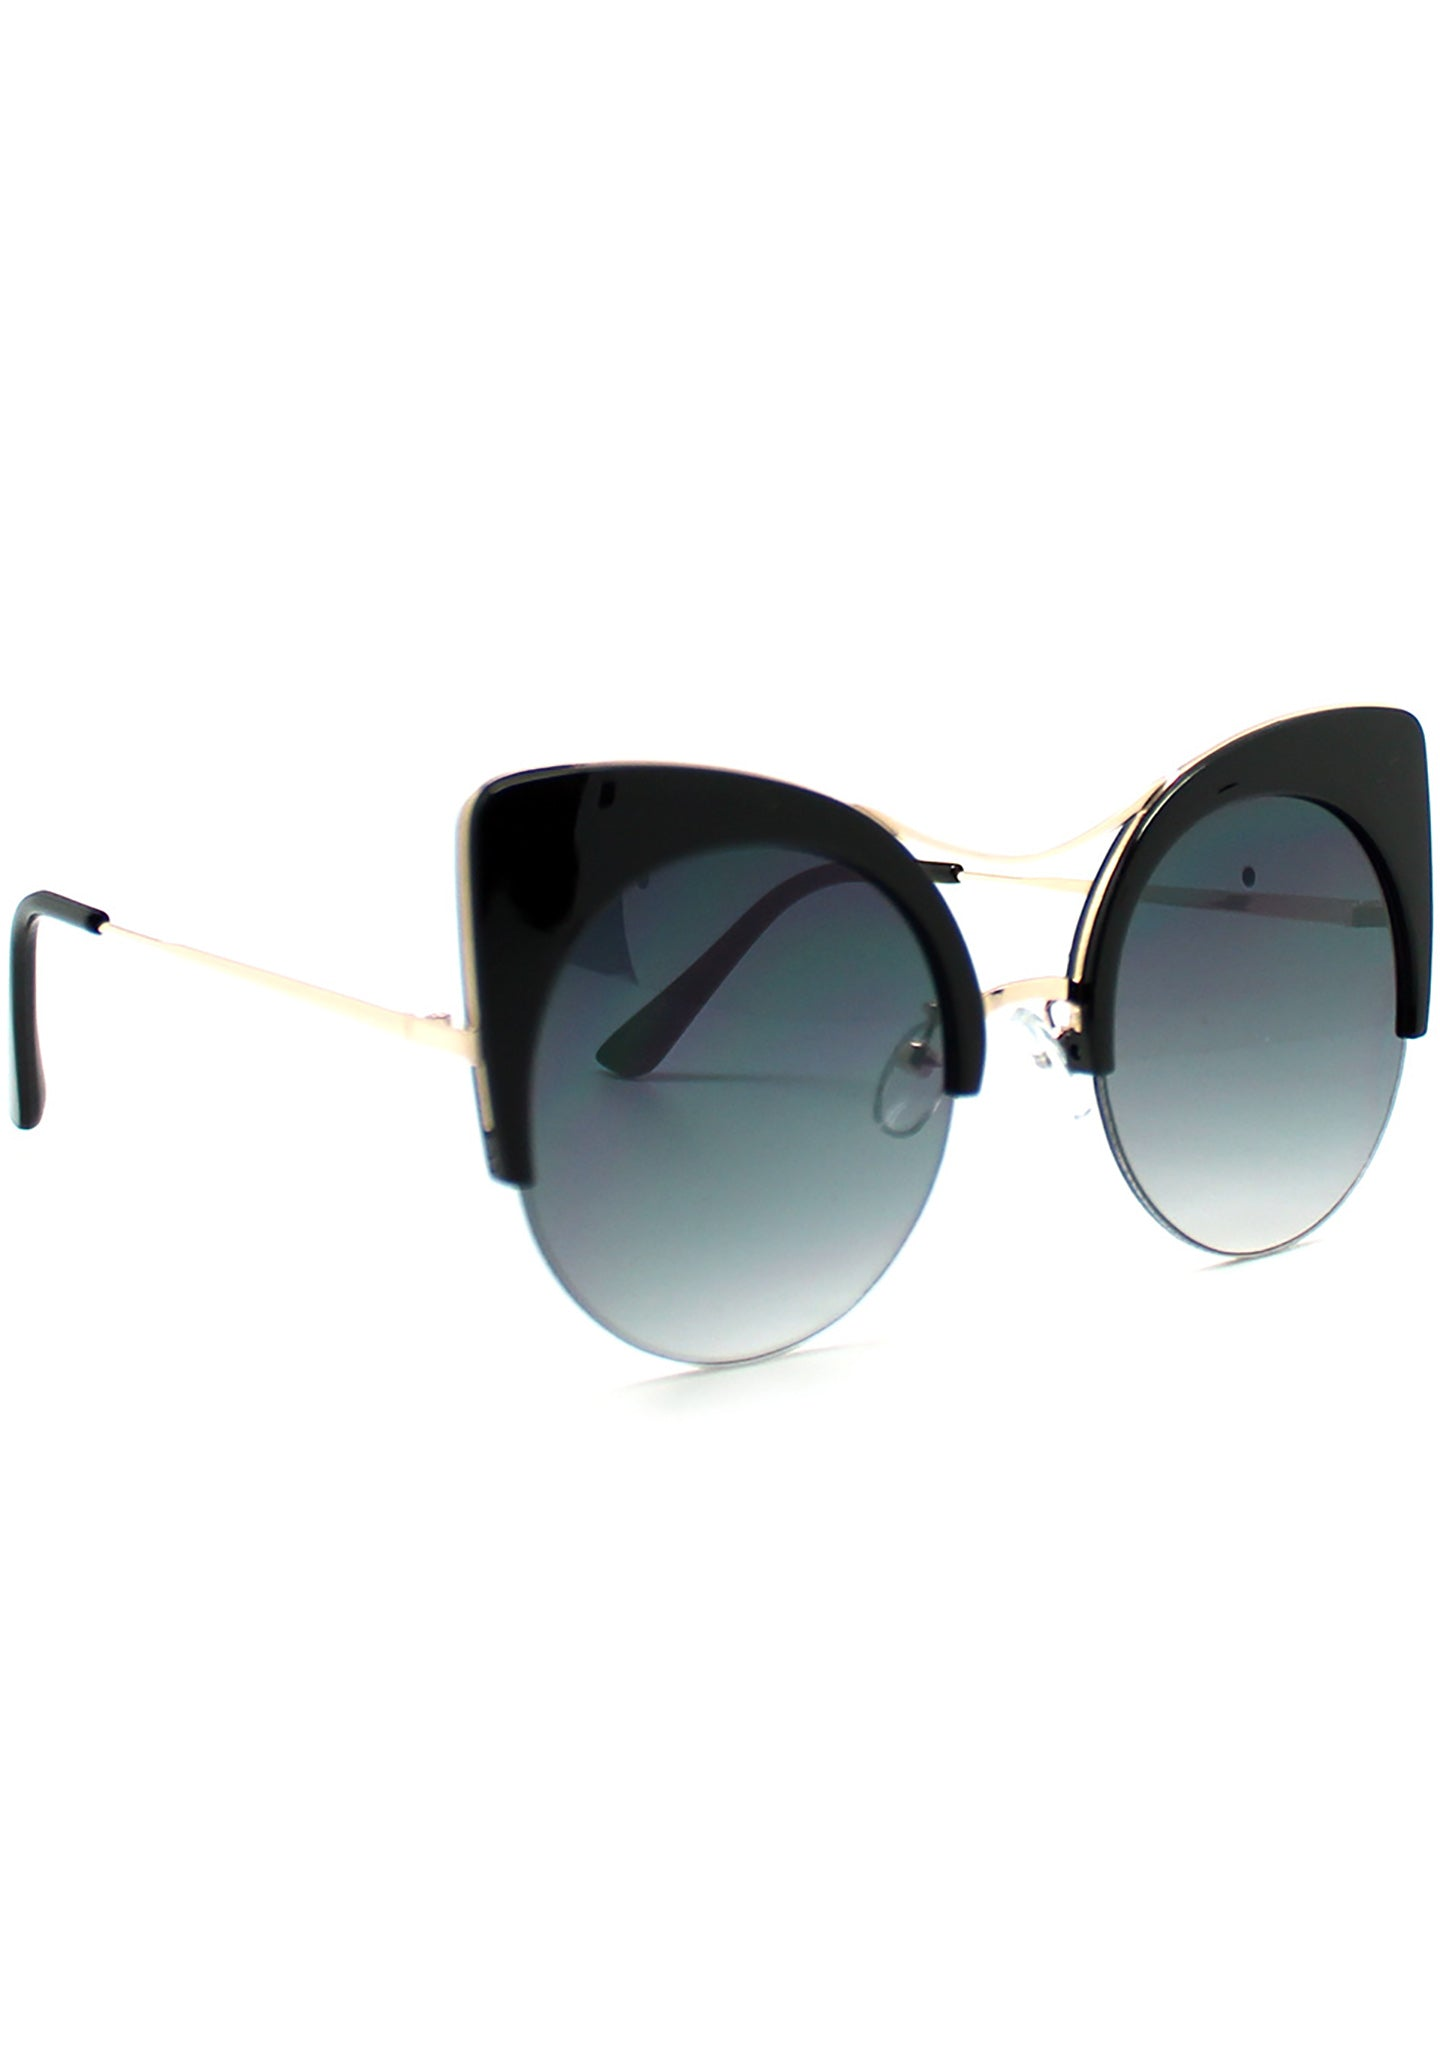 7 LUXE Electric Cat Mirrored Sunglasses